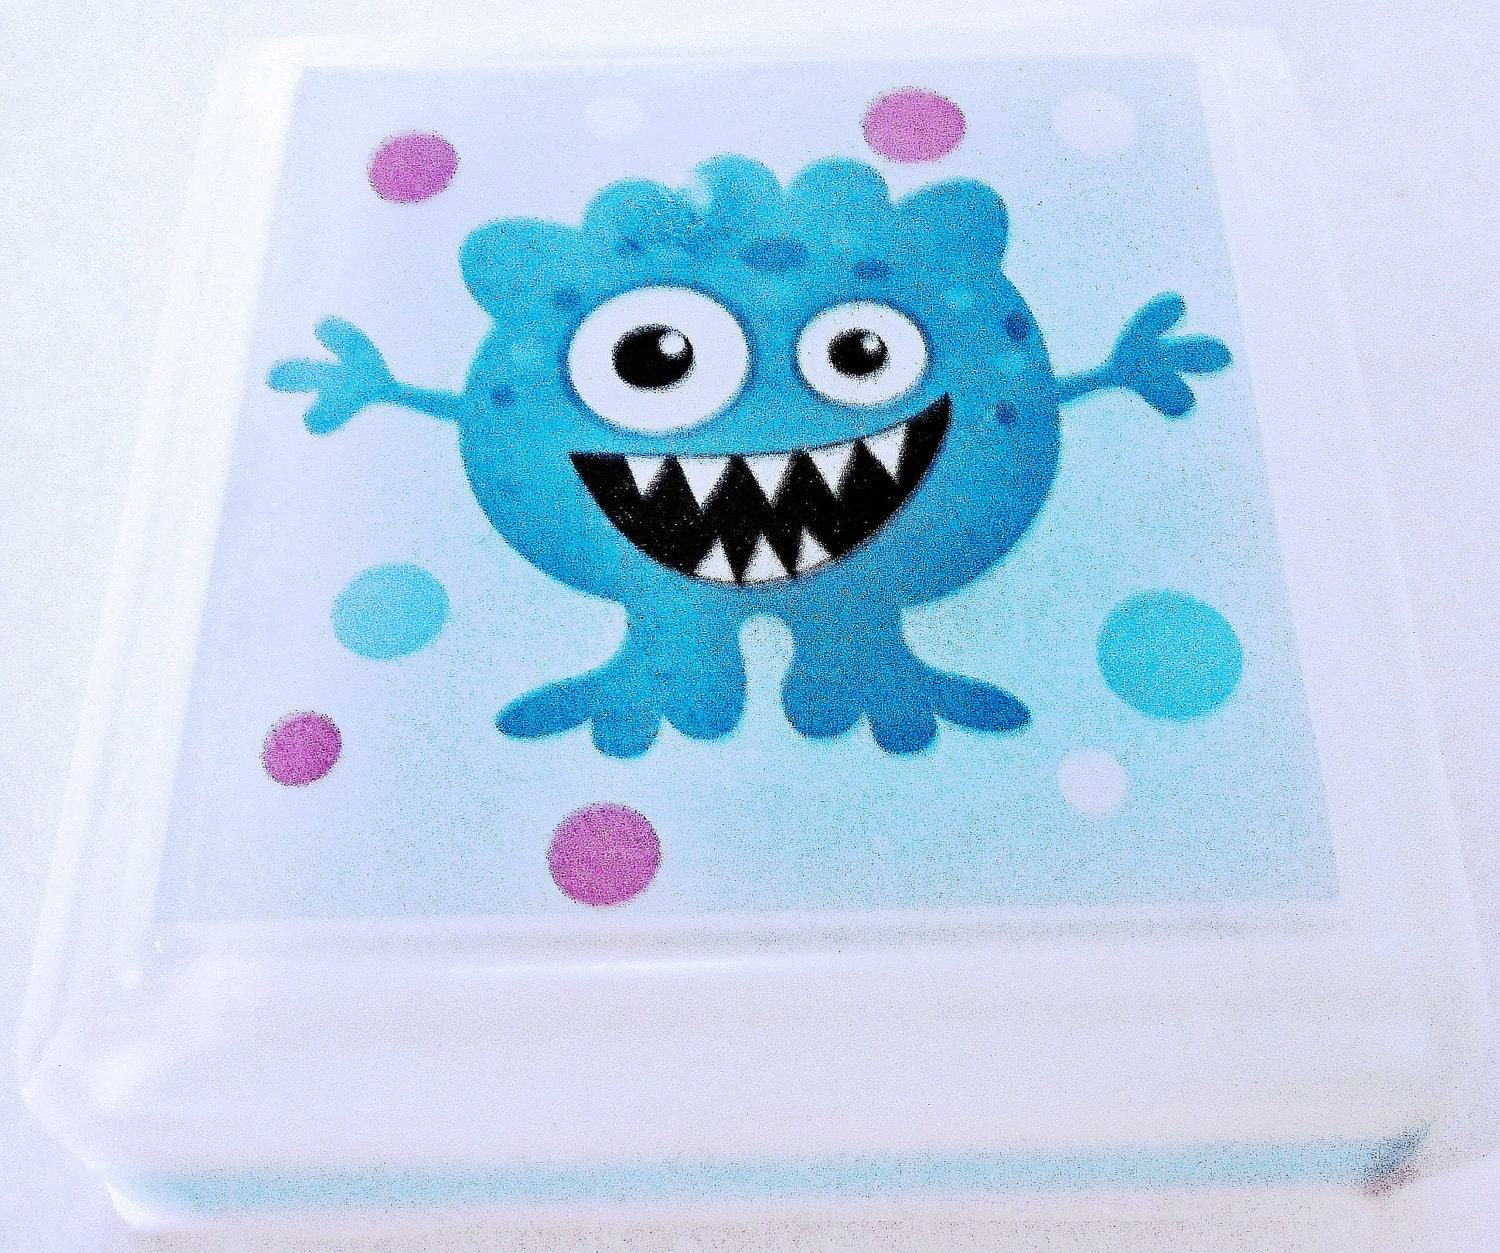 Grr Argh Monster Handmade Kids' Soap